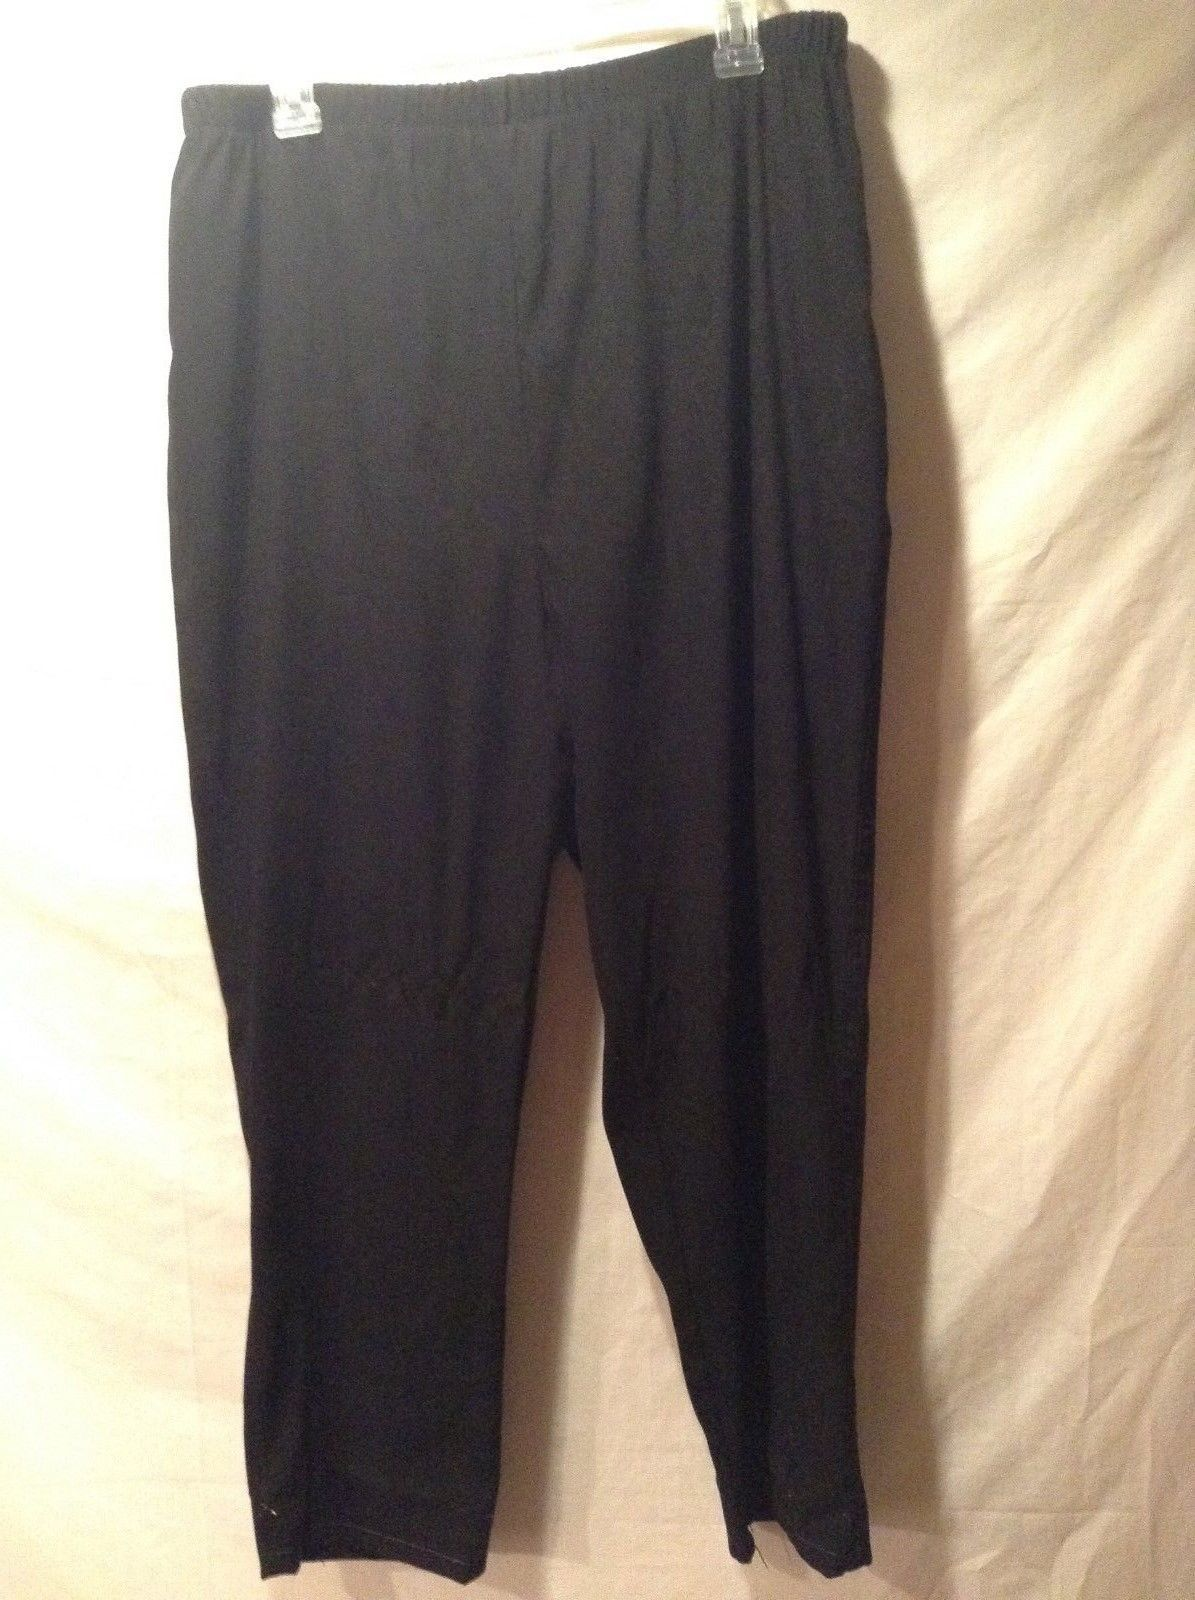 Ladies Denim & Co. Black Velvet Sweatpants